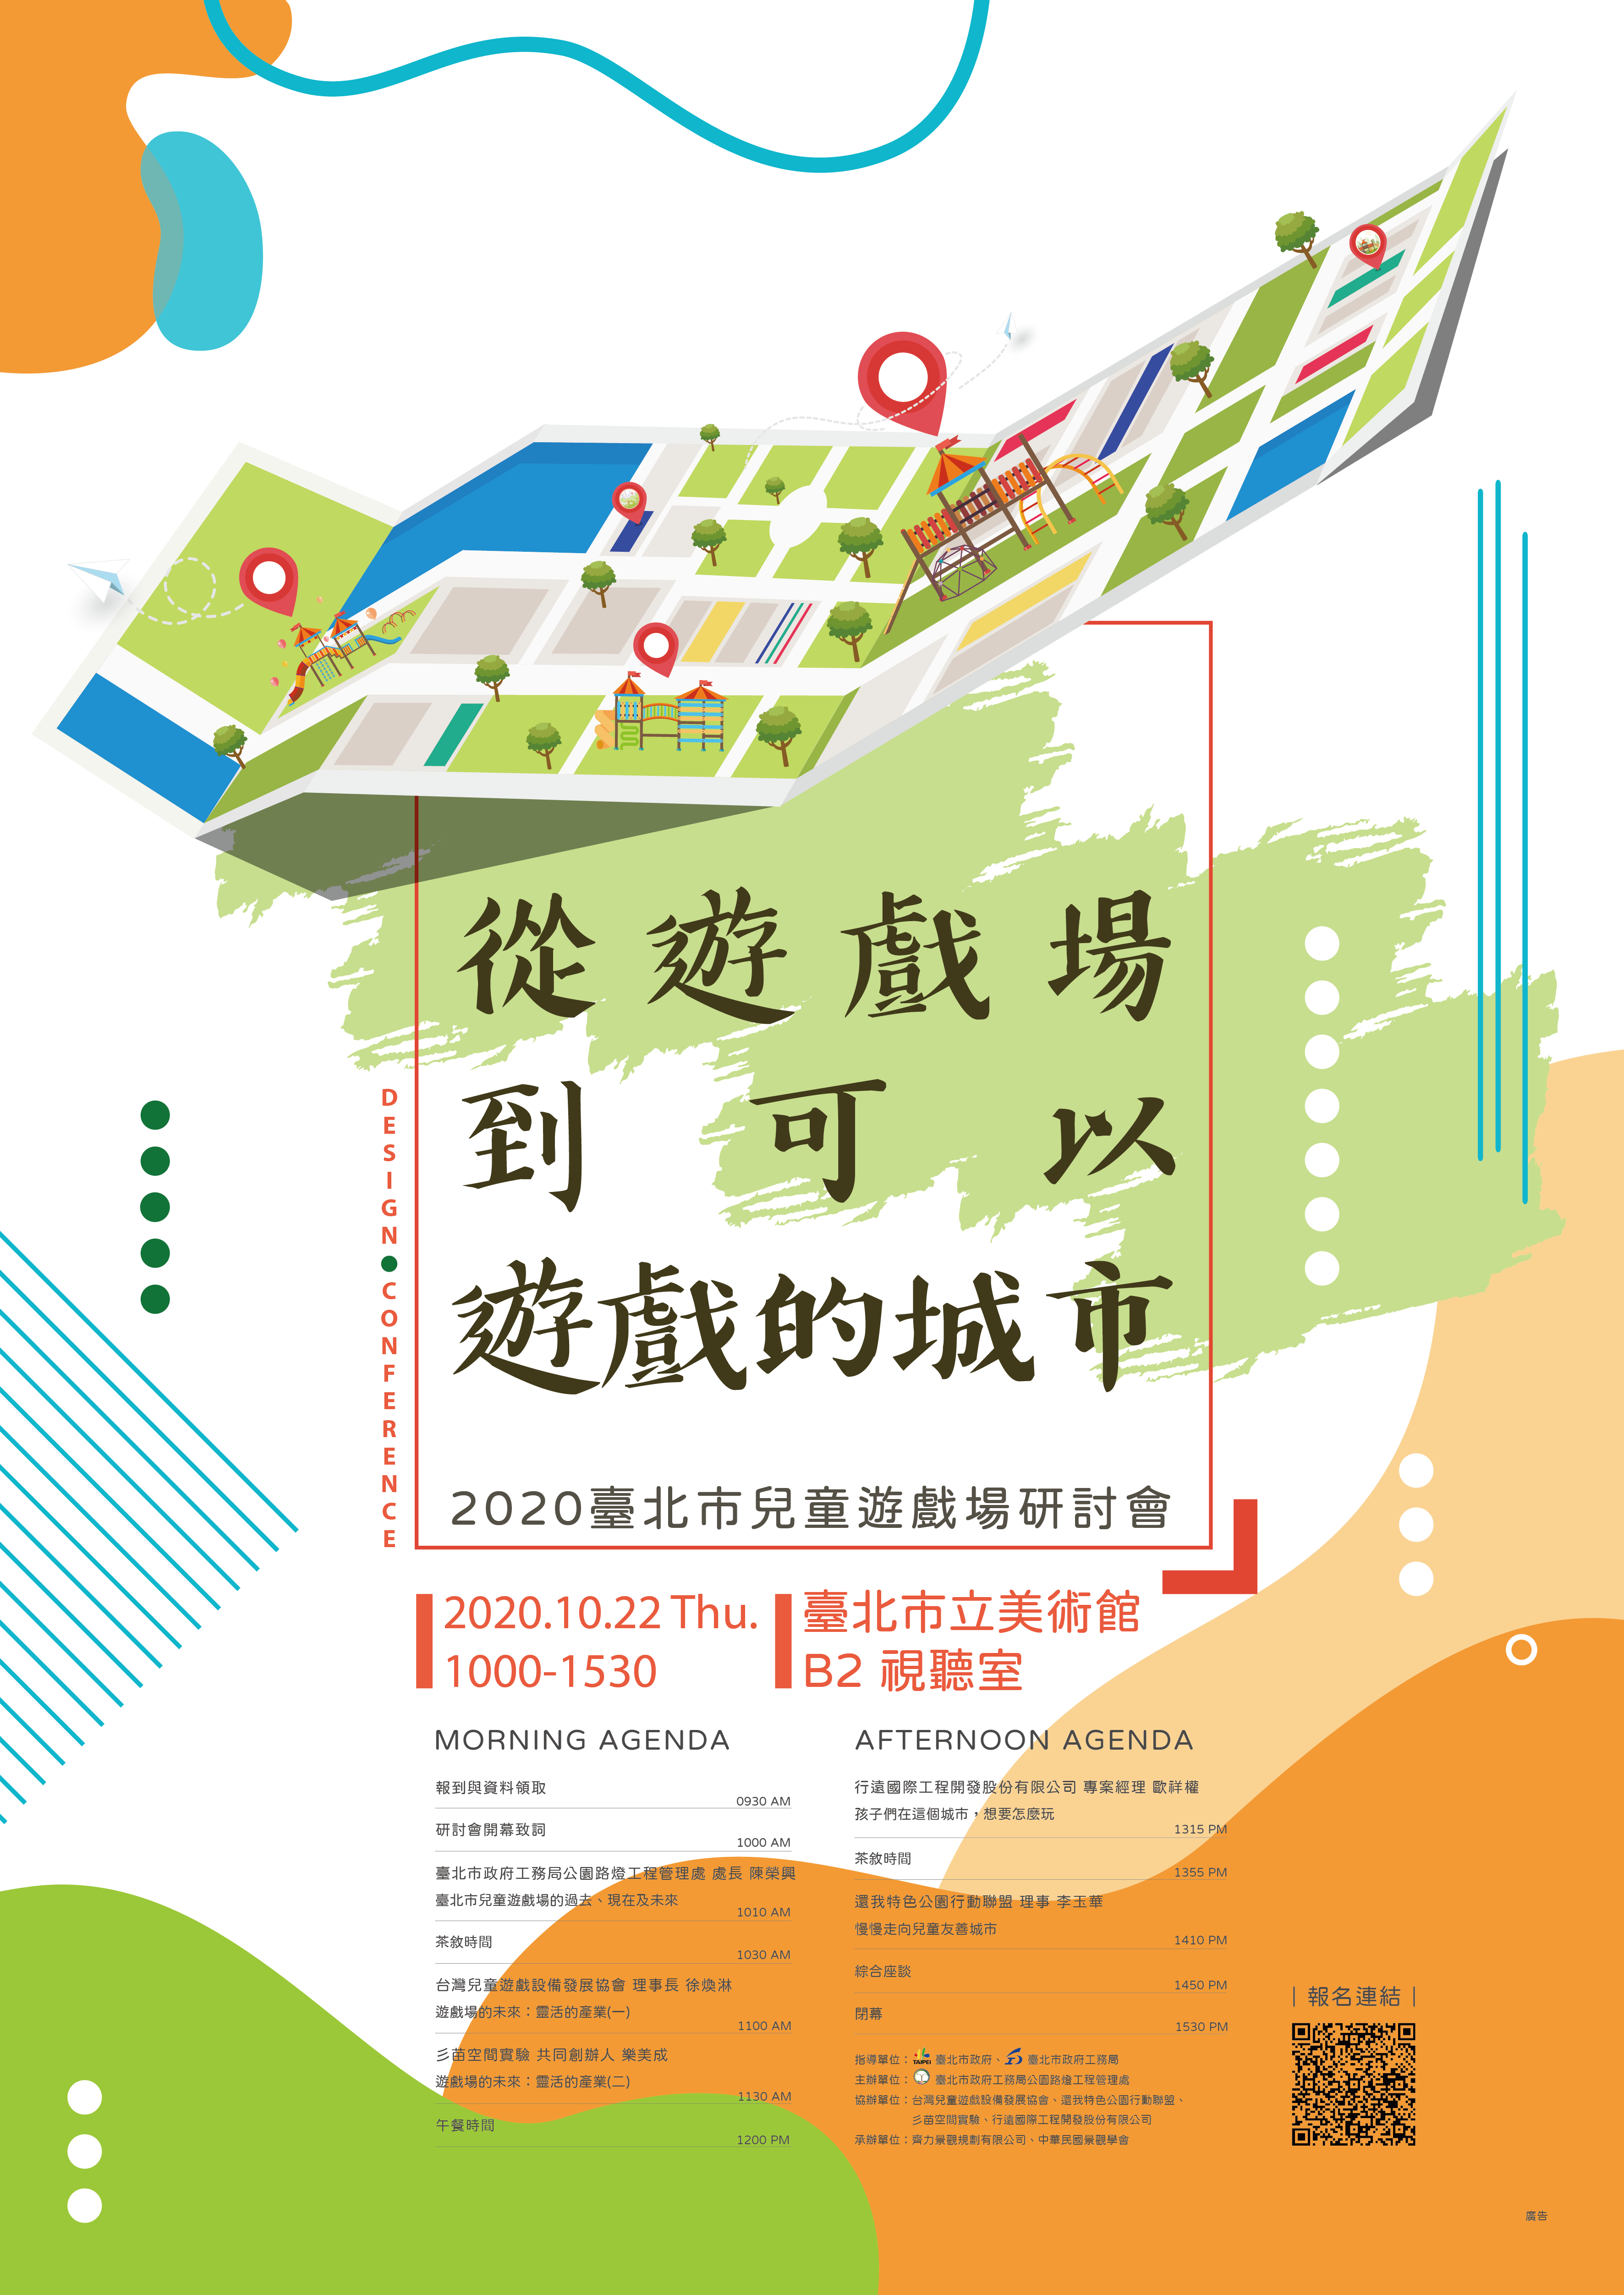 Activity poster for the Playground Design Conference